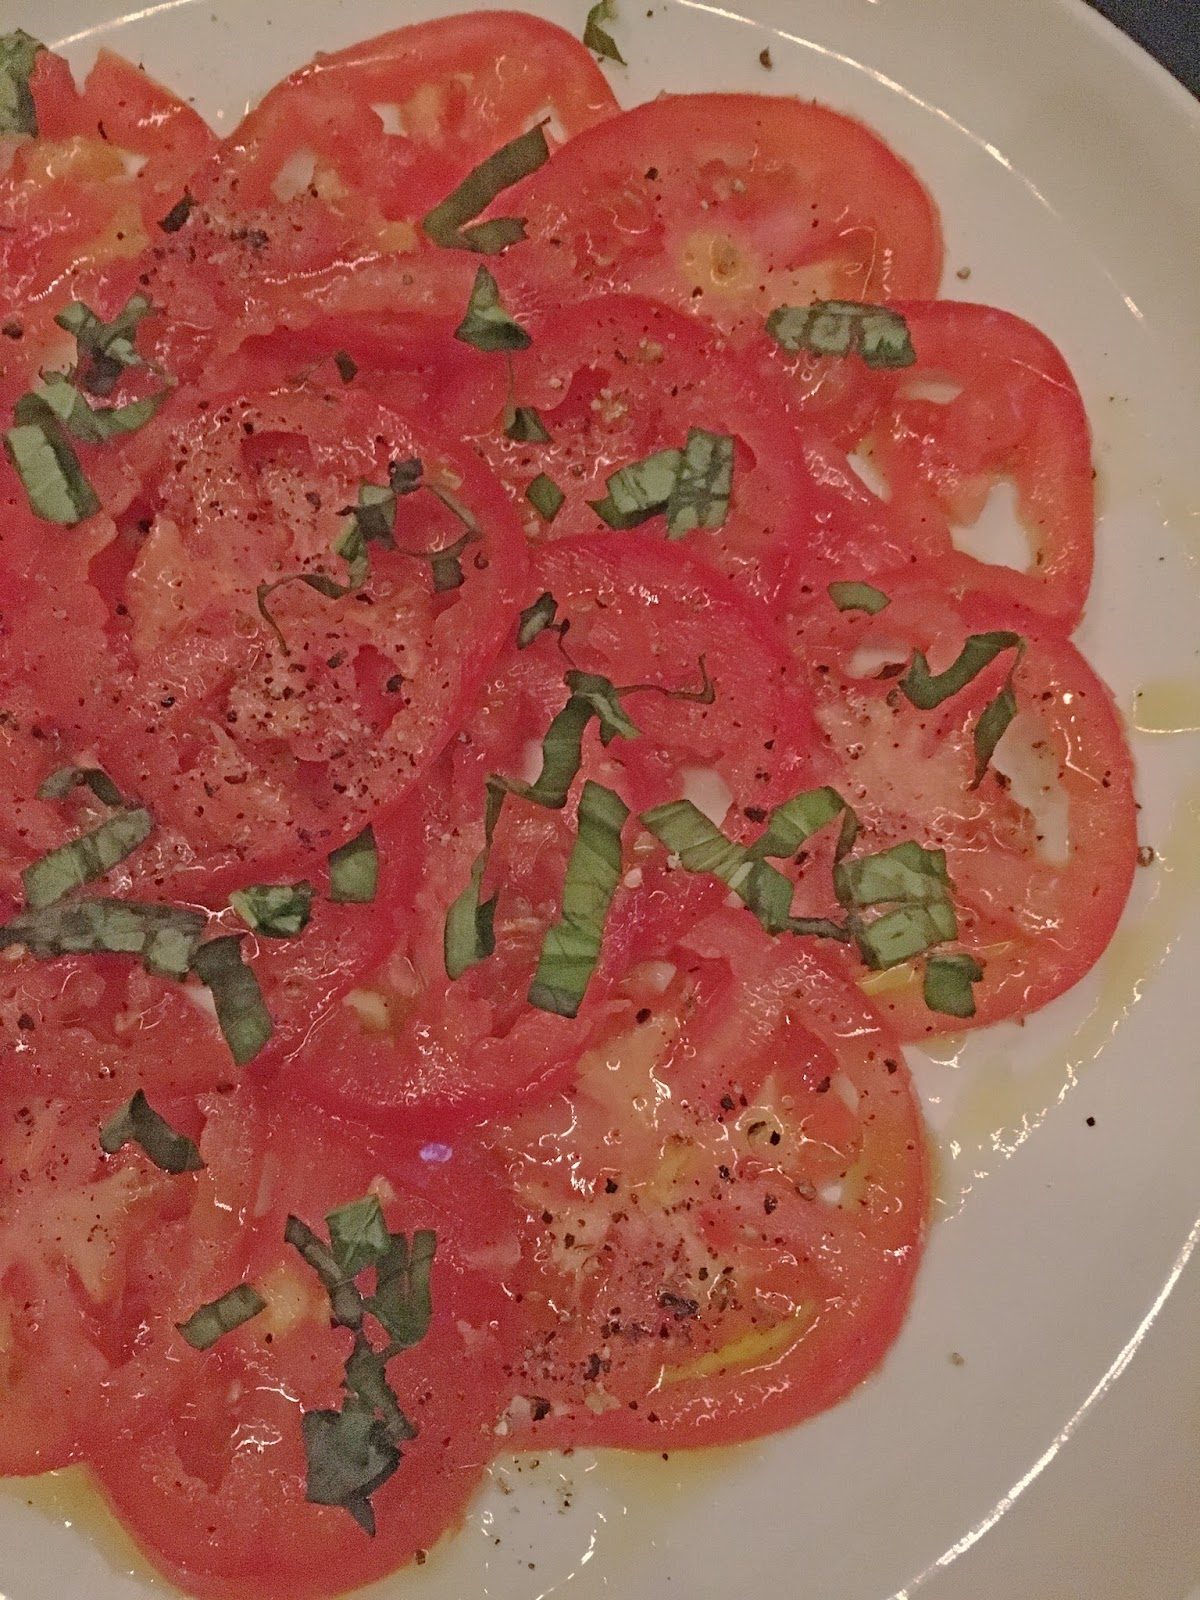 tomatoes with basil at Max's Wine Dive - a restaurant/bar in Fort Worth, Texas